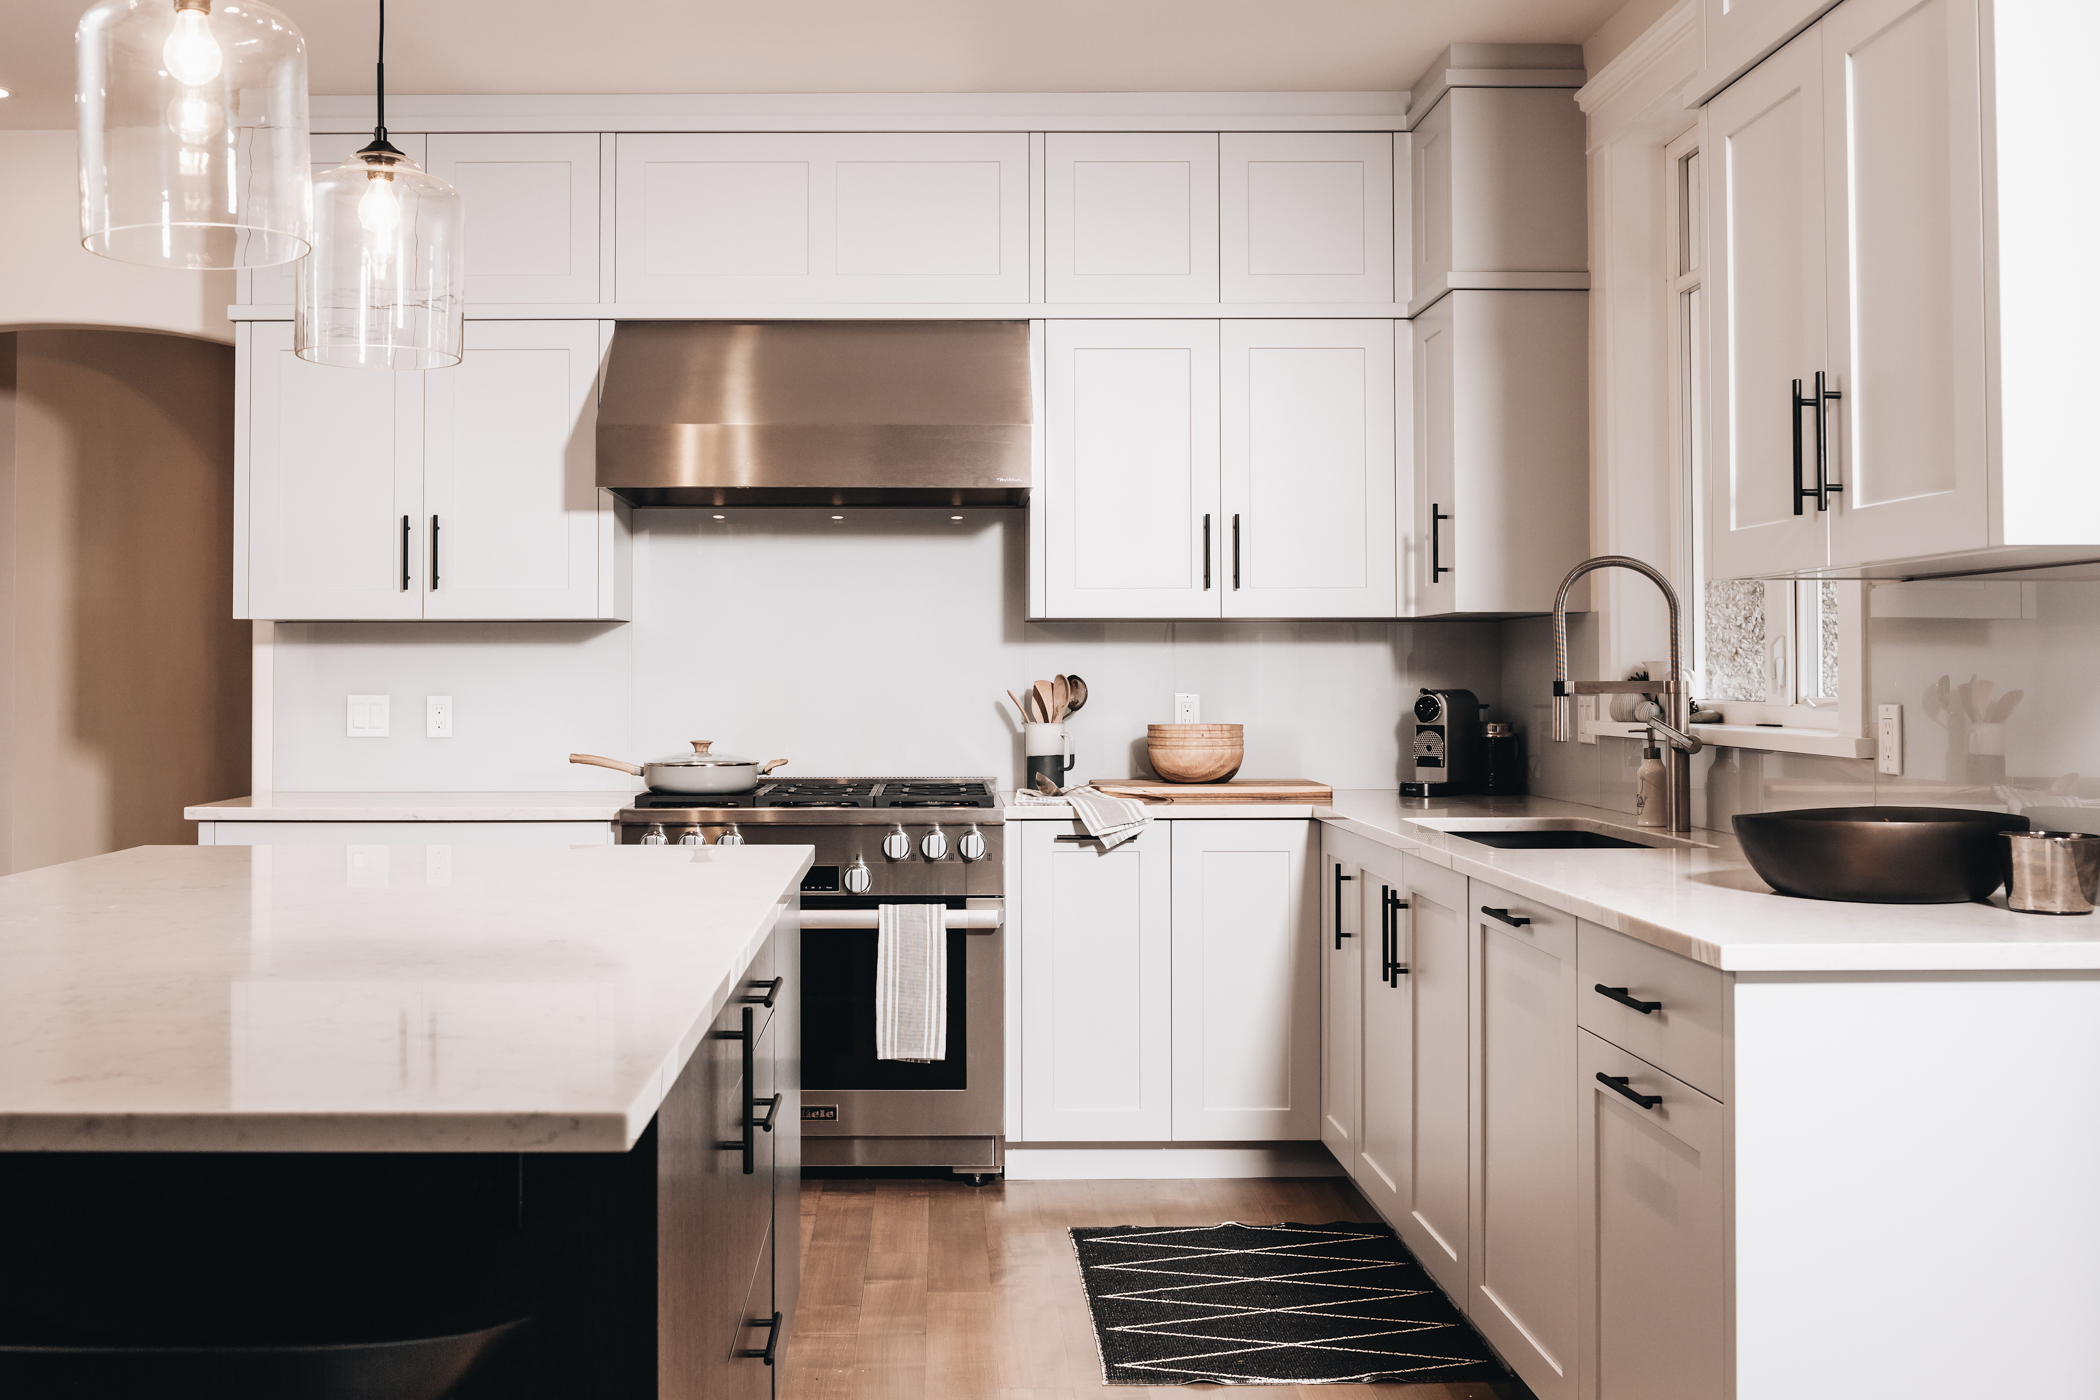 How Much Are Custom Kitchen Cabinets? 1